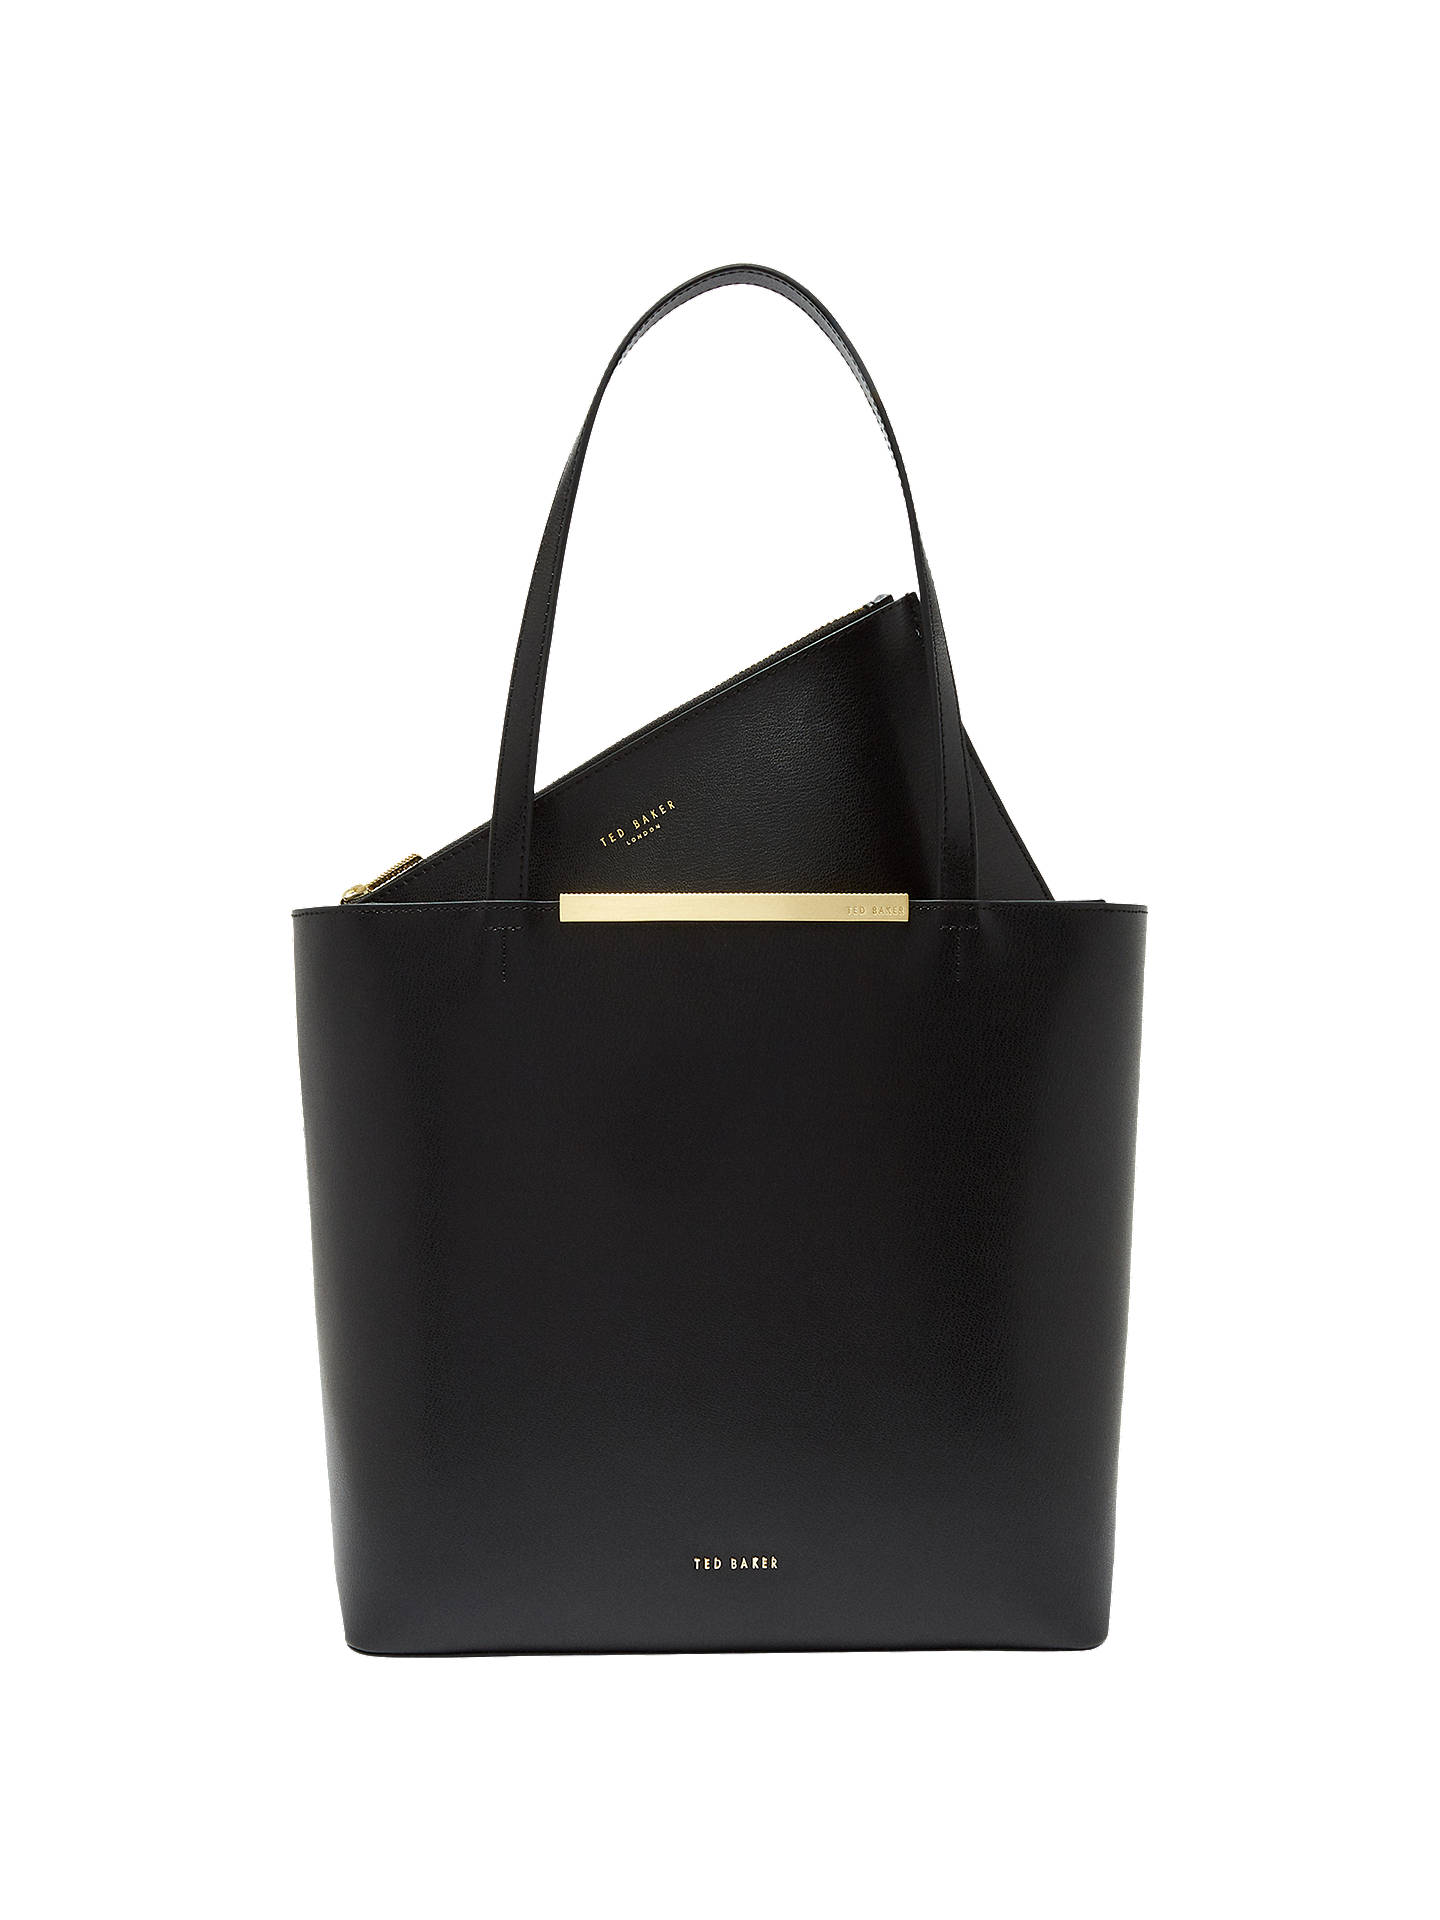 Ted Baker Melisa Large Leather Tote Bag, Black by Ted Baker